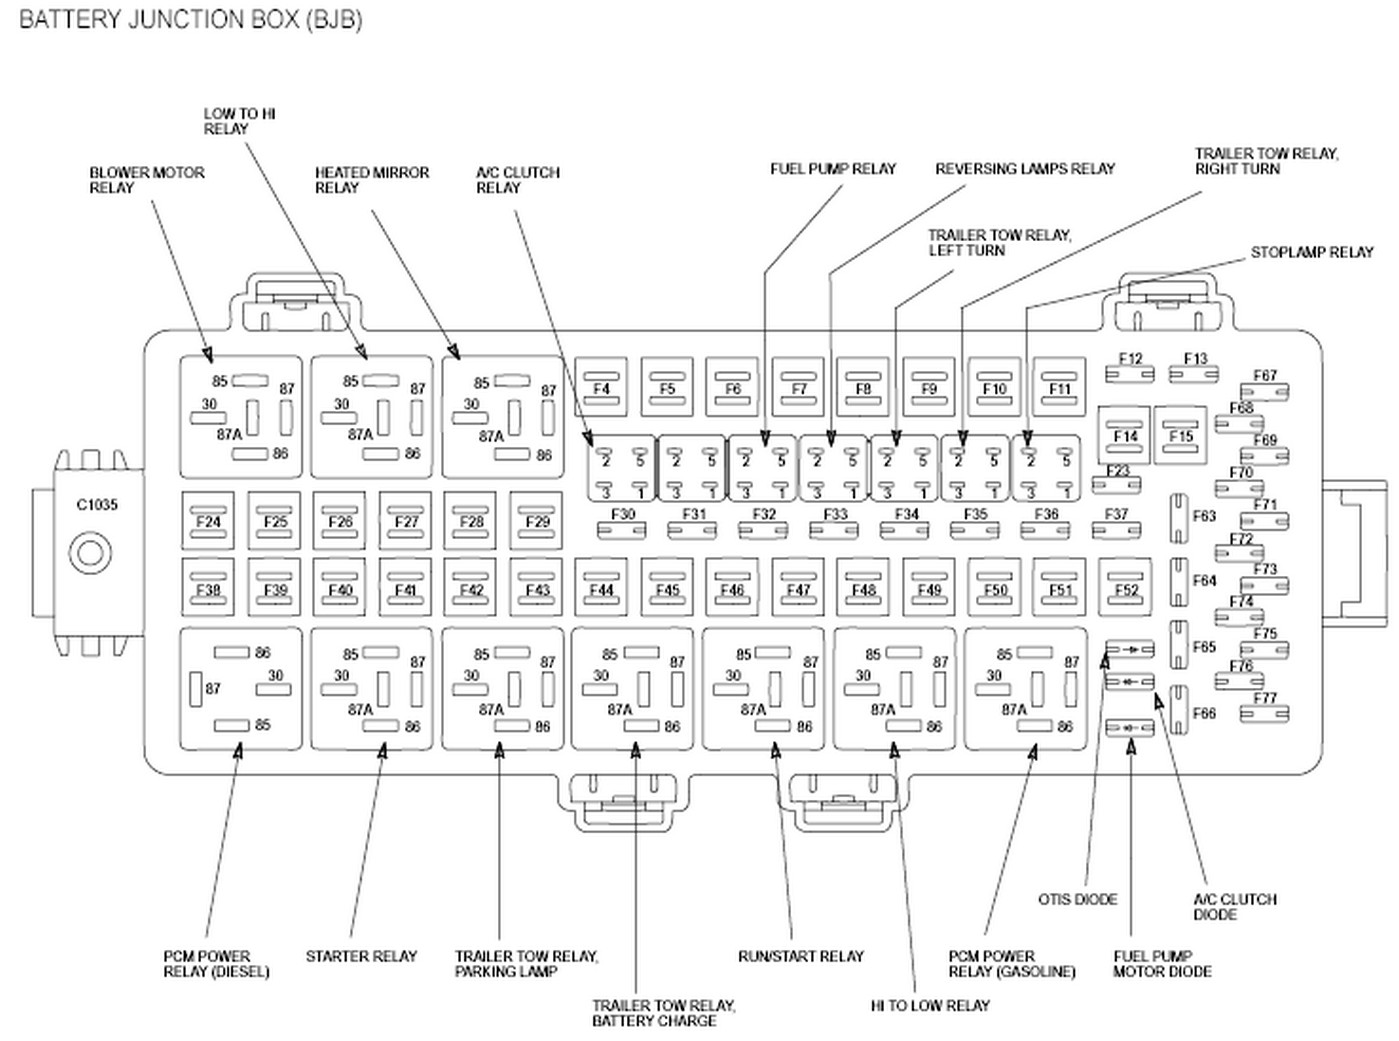 2011 ford f250 fuse box diagram Zoinyhu 2012 f250 fuse box location 2009 ford fusion fuse box diagram 2012 ford edge fuse box diagram at honlapkeszites.co